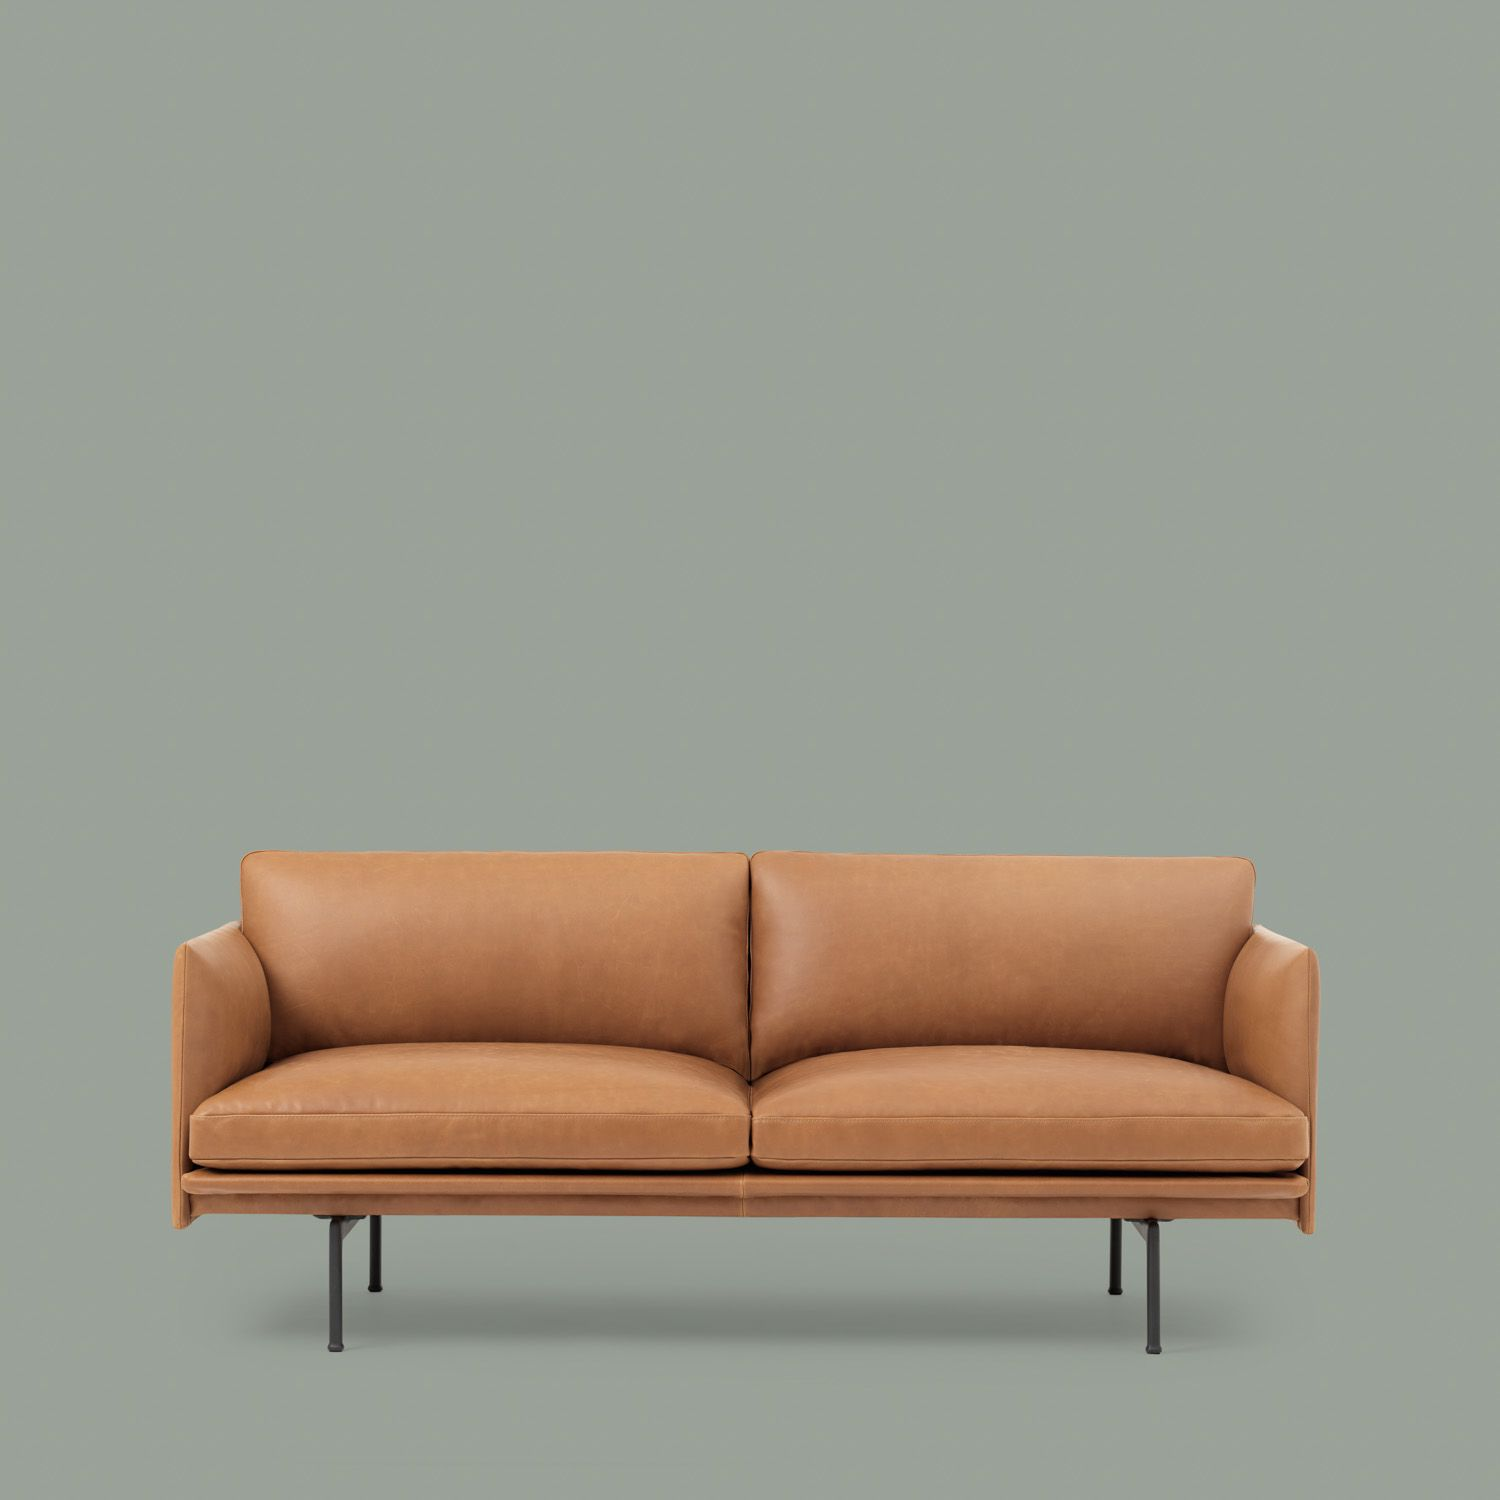 Scandinavian Interior Inspiration From Muuto The Outline Series Adds New Perspectives To The Classic Scandina In 2020 Scandinavian Sofa Design Muuto Sofa Sofa Styling